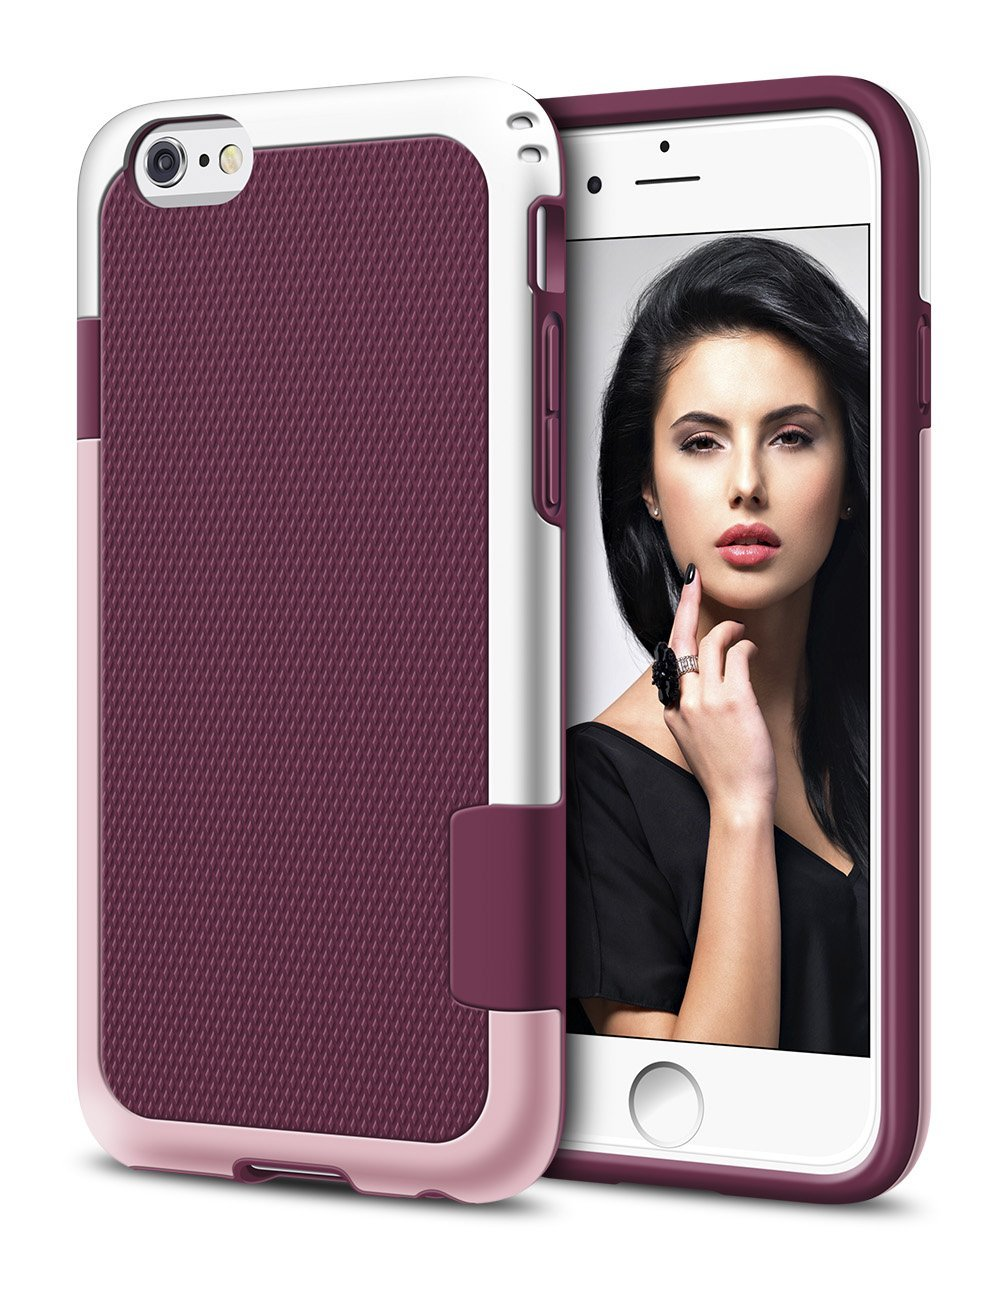 Small Iphone Case Companies